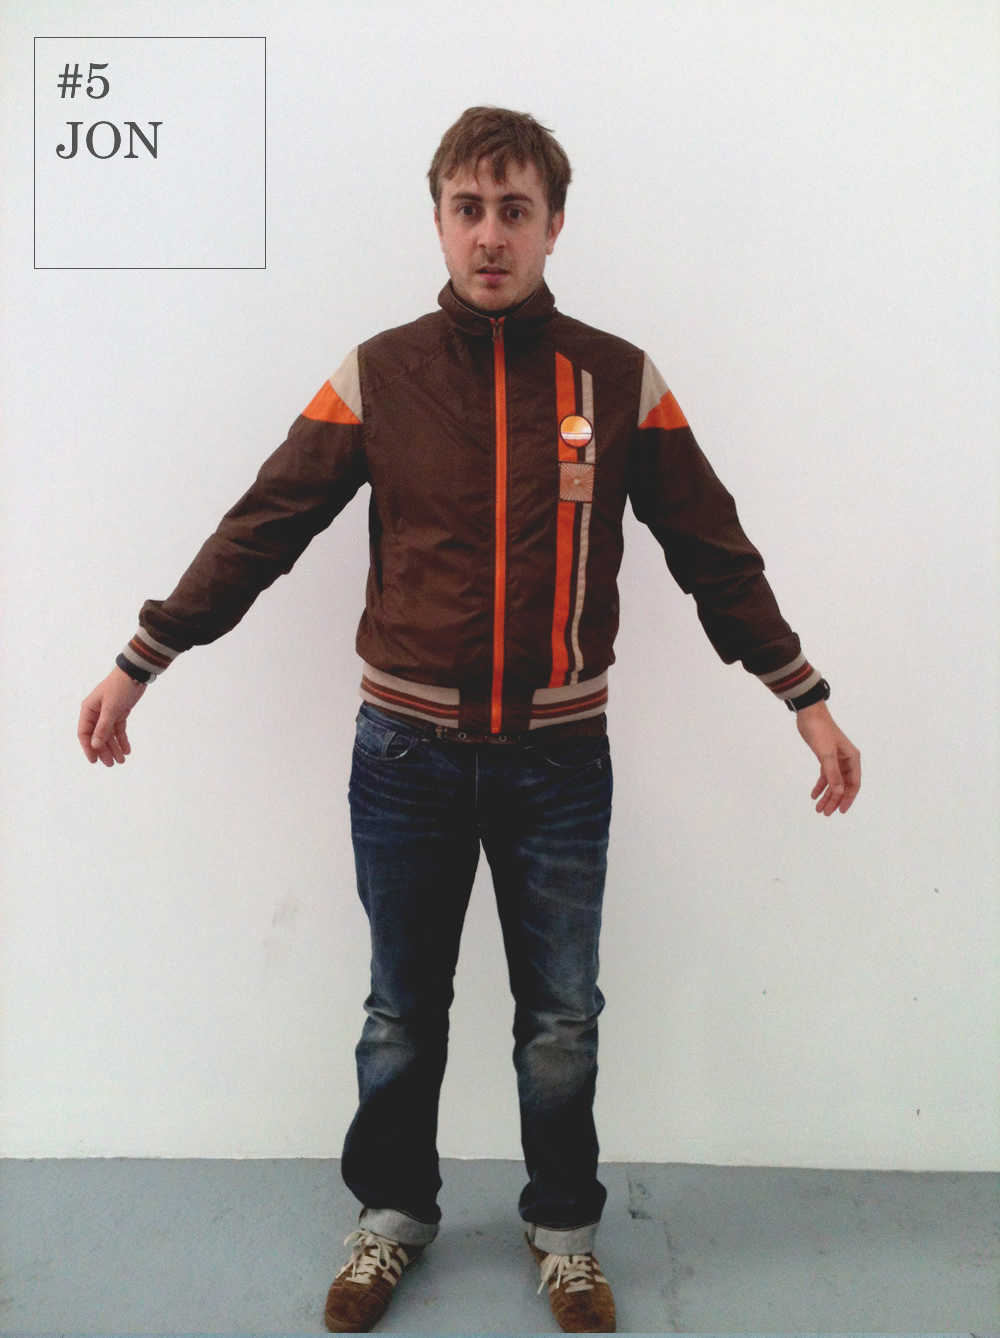 For Jon's secondappearanceon the Fash Off, he shows us his take on a 90's inspired look.   Showing off his outfit in his signature stance, he models a playful palette of chocolate orange shades. Coupled with a classic pair of denim jeans, Jon let's his jacket do all the talking.   Some would say this look is stuck in the past, others would say Jon is ahead of his time.    We'll let you decide…      Jacket: Burton      Jeans : Flying Horse     Shoes : Adidas Chile '62